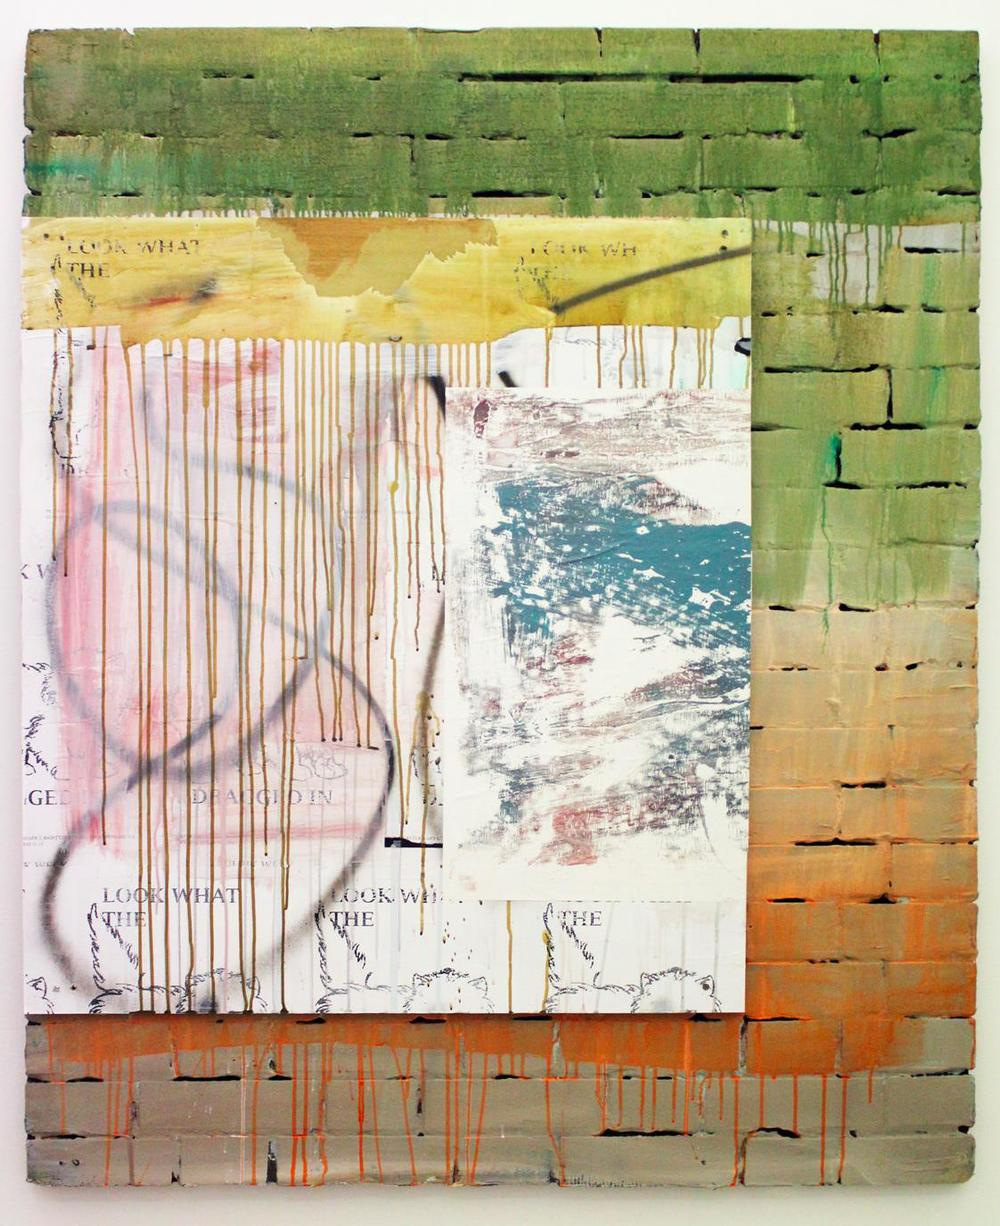 Untitled, 2012, 146 x 122 cm Mixed media on board